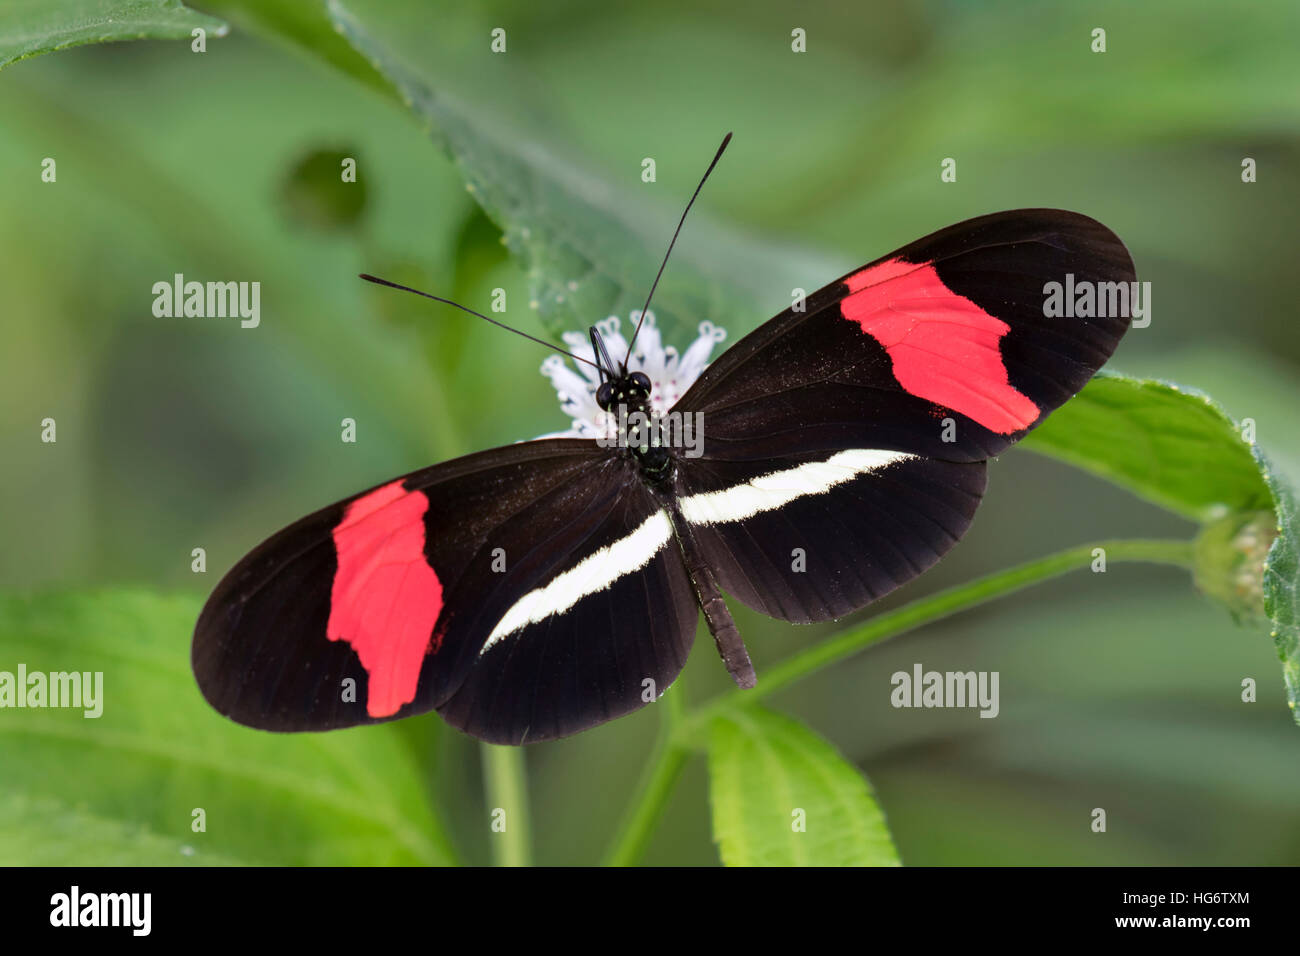 Red postman butterfly (Heliconius erato) feeding on a flower, Belize, Central America - Stock Image